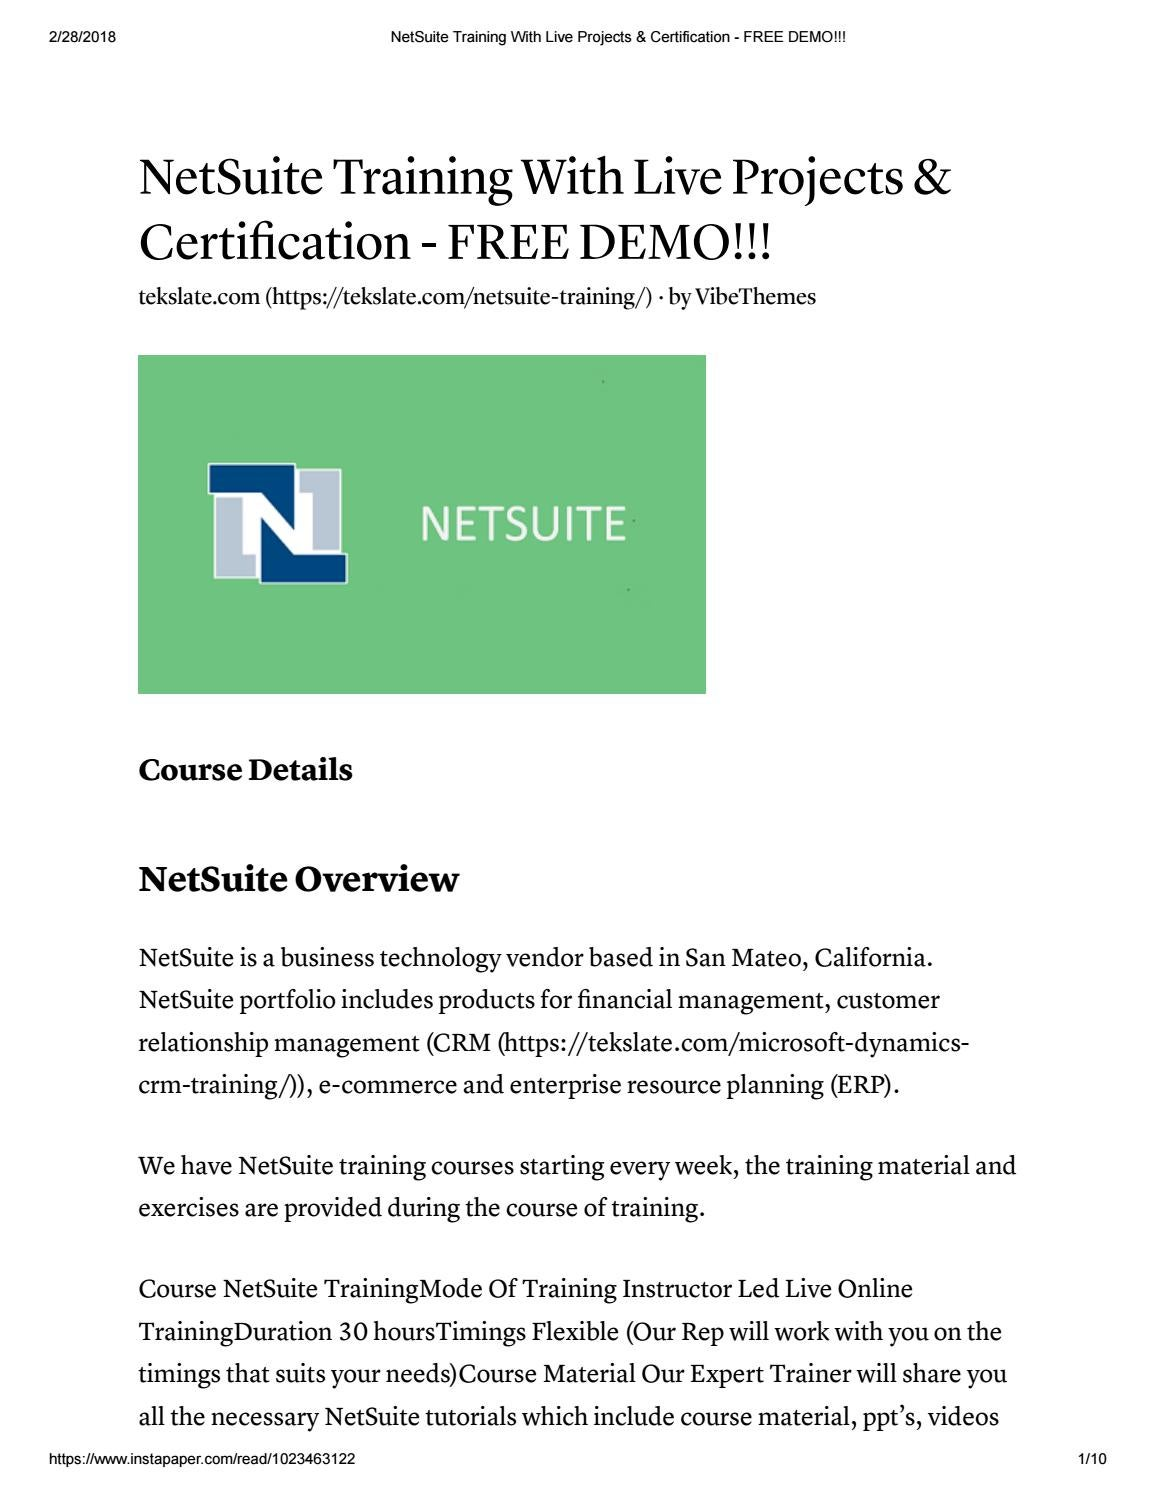 Netsuite Training With Live Projects Certification Free Demo By